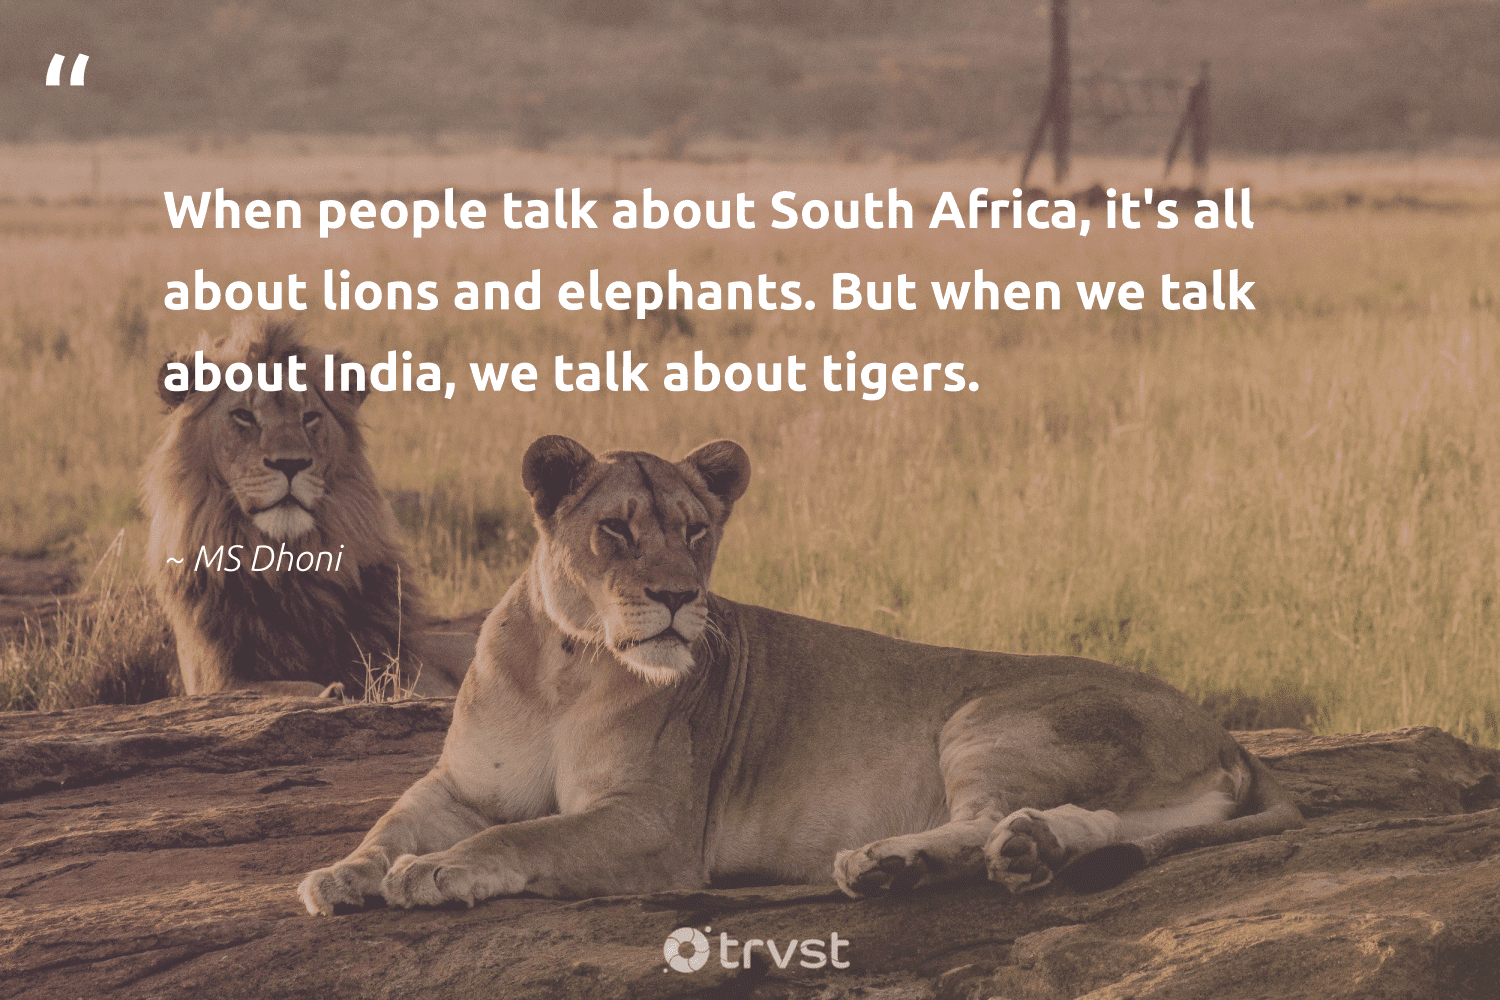 """""""When people talk about South Africa, it's all about lions and elephants. But when we talk about India, we talk about tigers.""""  - MS Dhoni #trvst #quotes #southafrica #india #africa #elephants #lions #splendidanimals #collectiveaction #wildlife #ecoconscious #protectnature"""